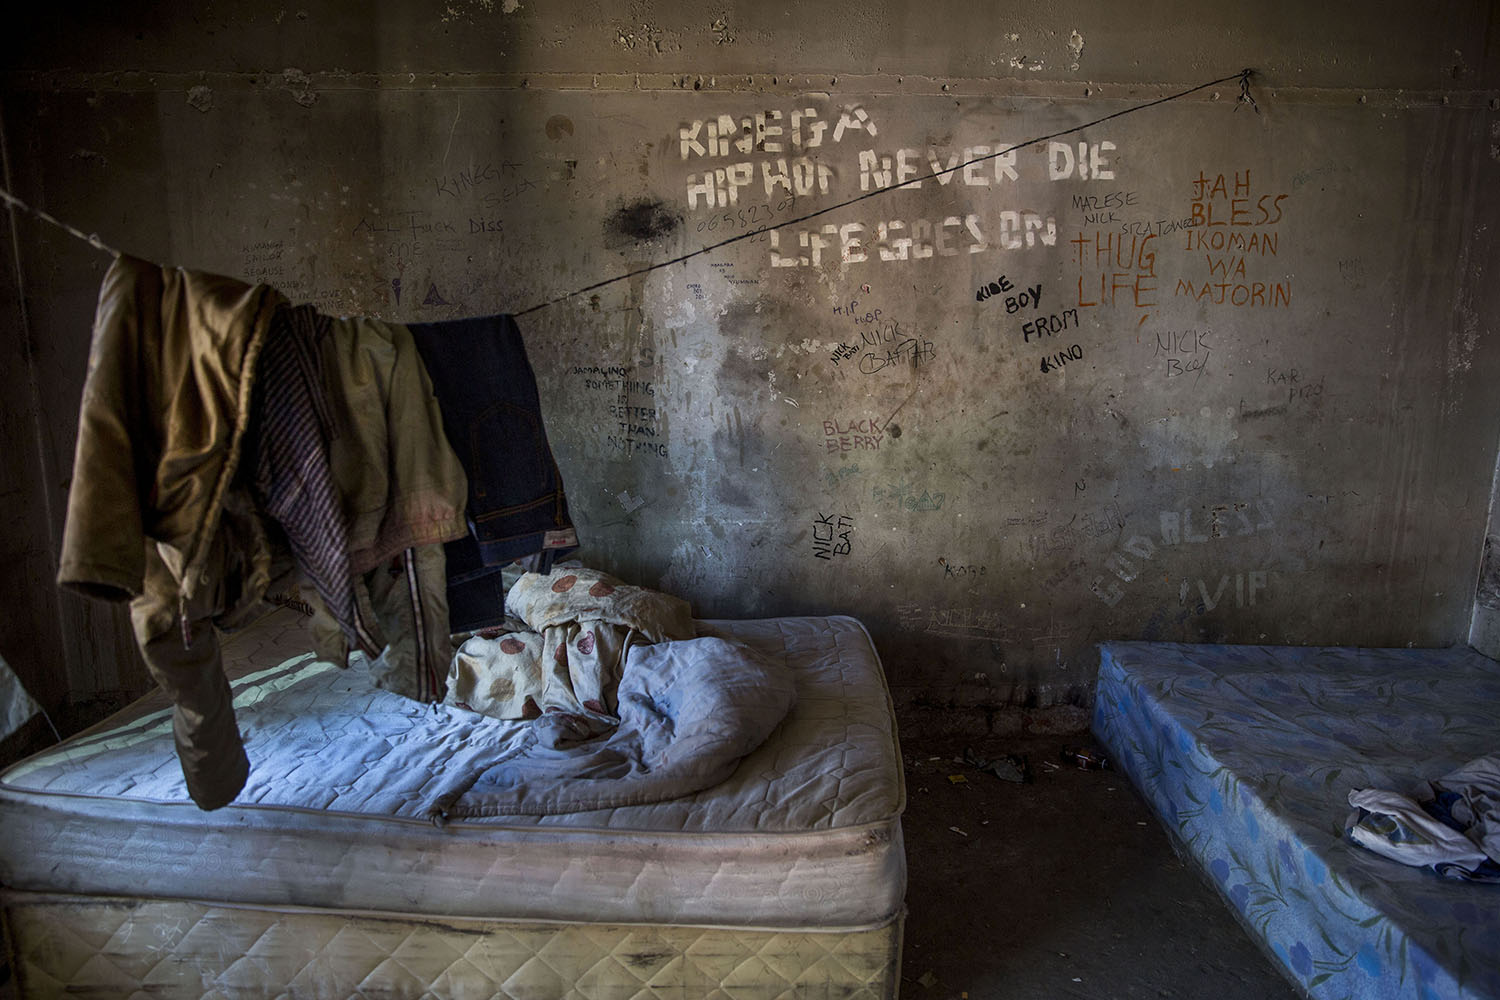 A room that houses several African migrants, July 17, 2015.